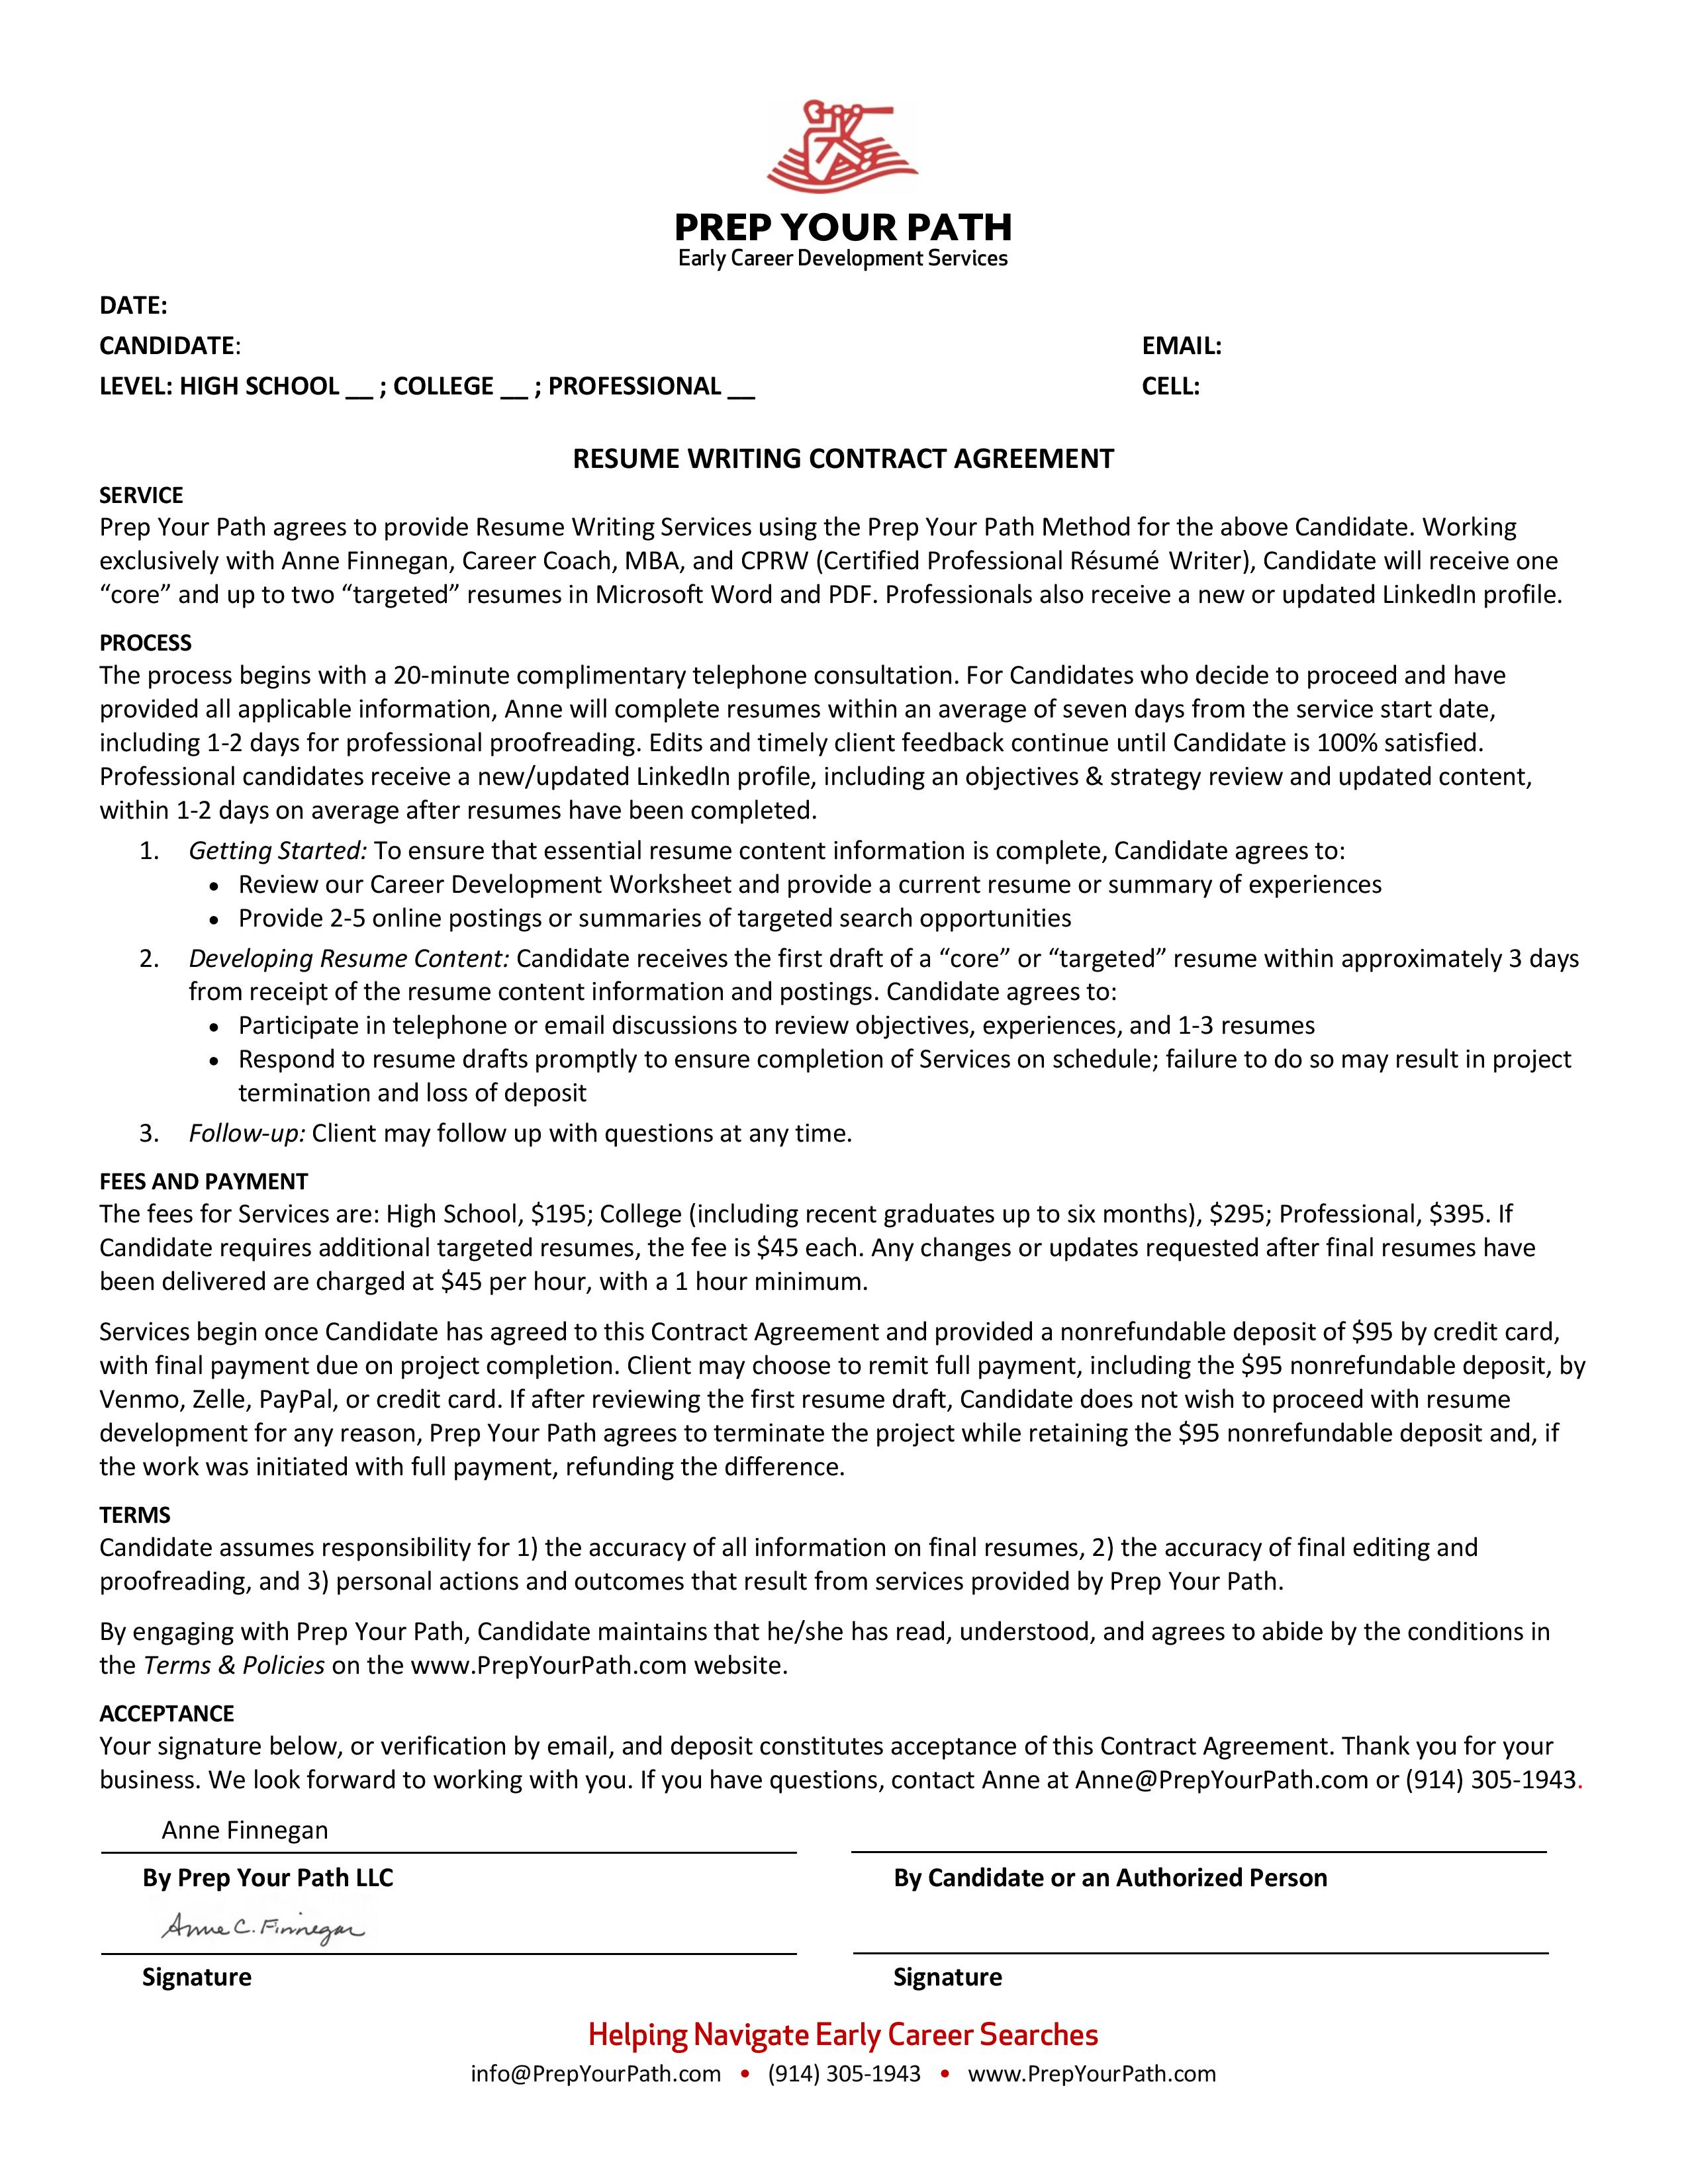 Resume Writing Contract Agreement